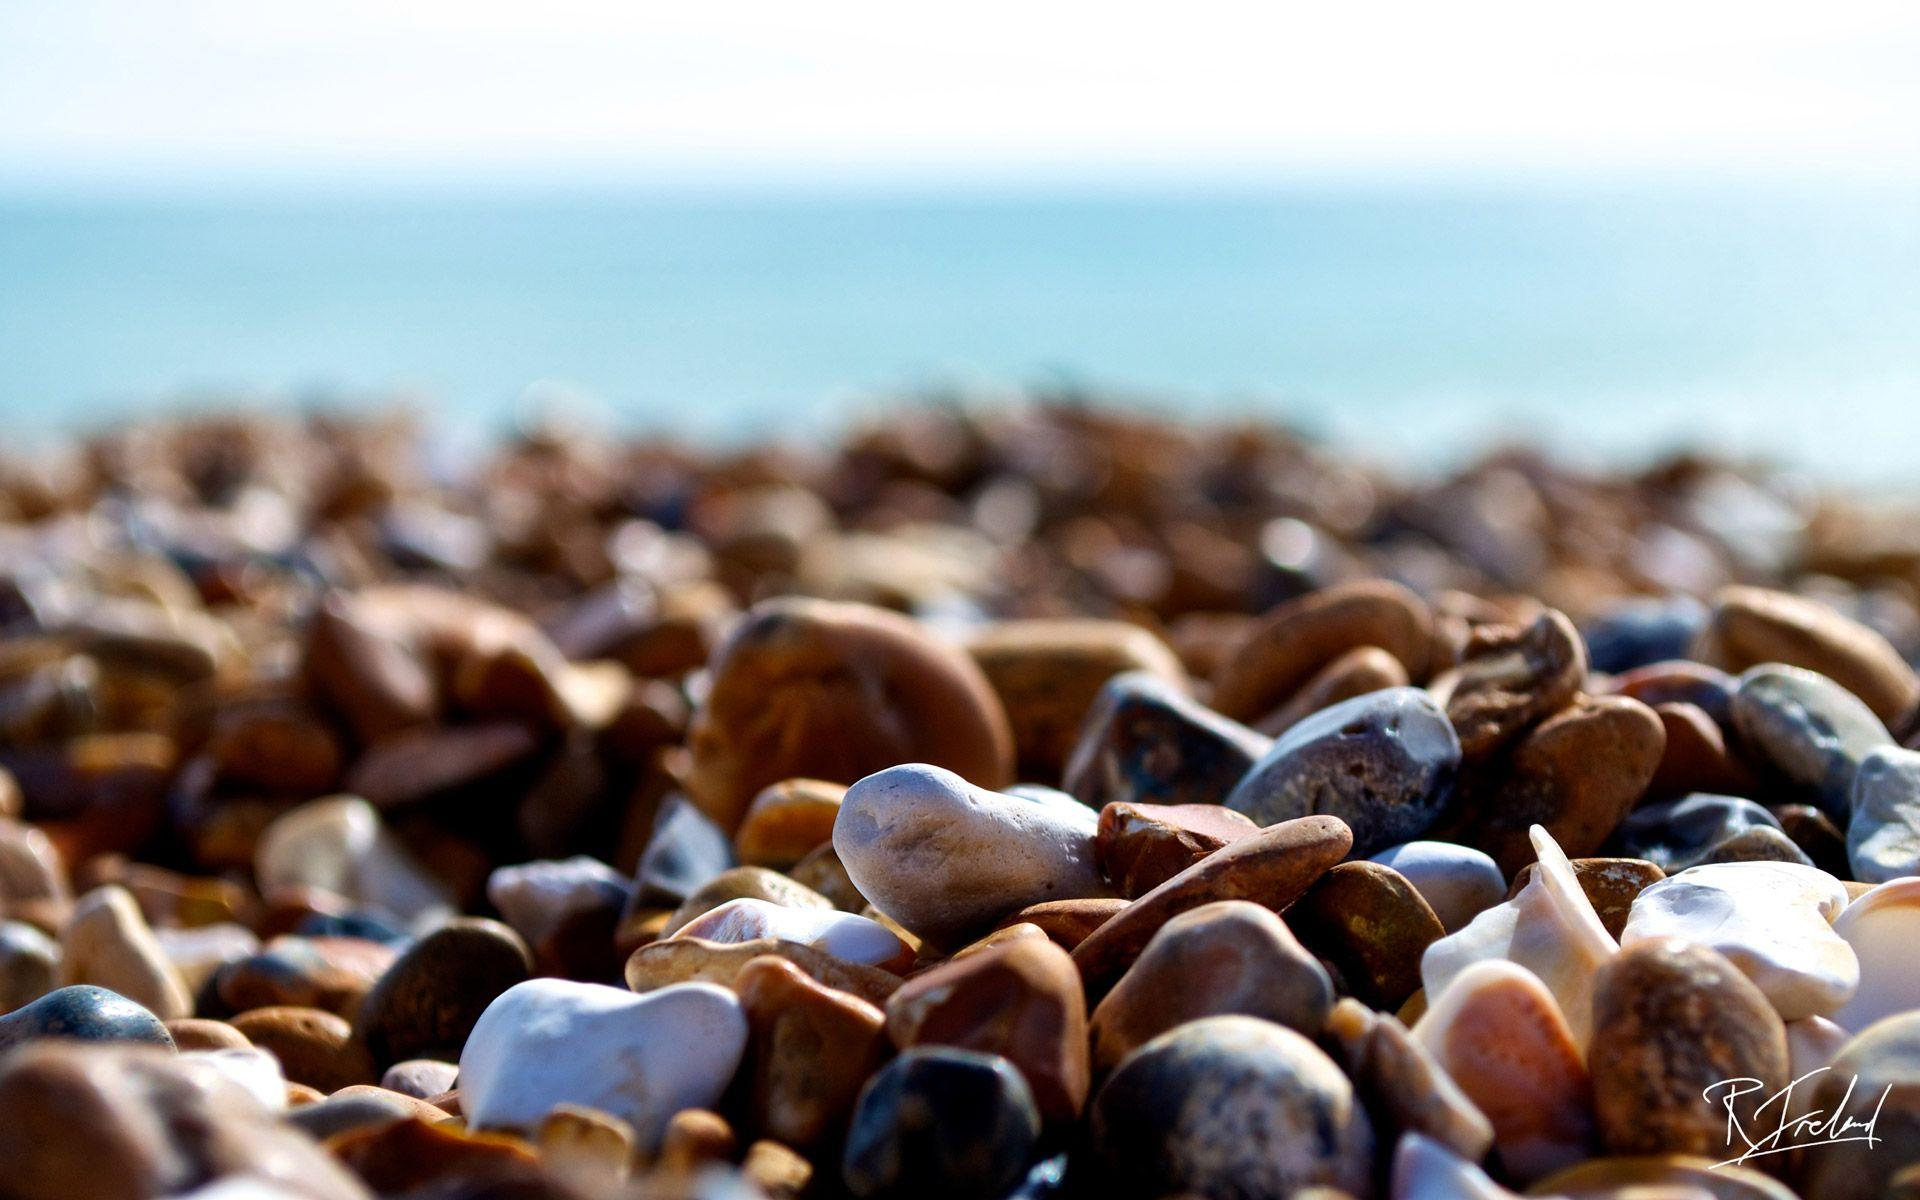 Brighton Beach Stones Hd Widescreen Wallpapers 1920x1200 HD Pic